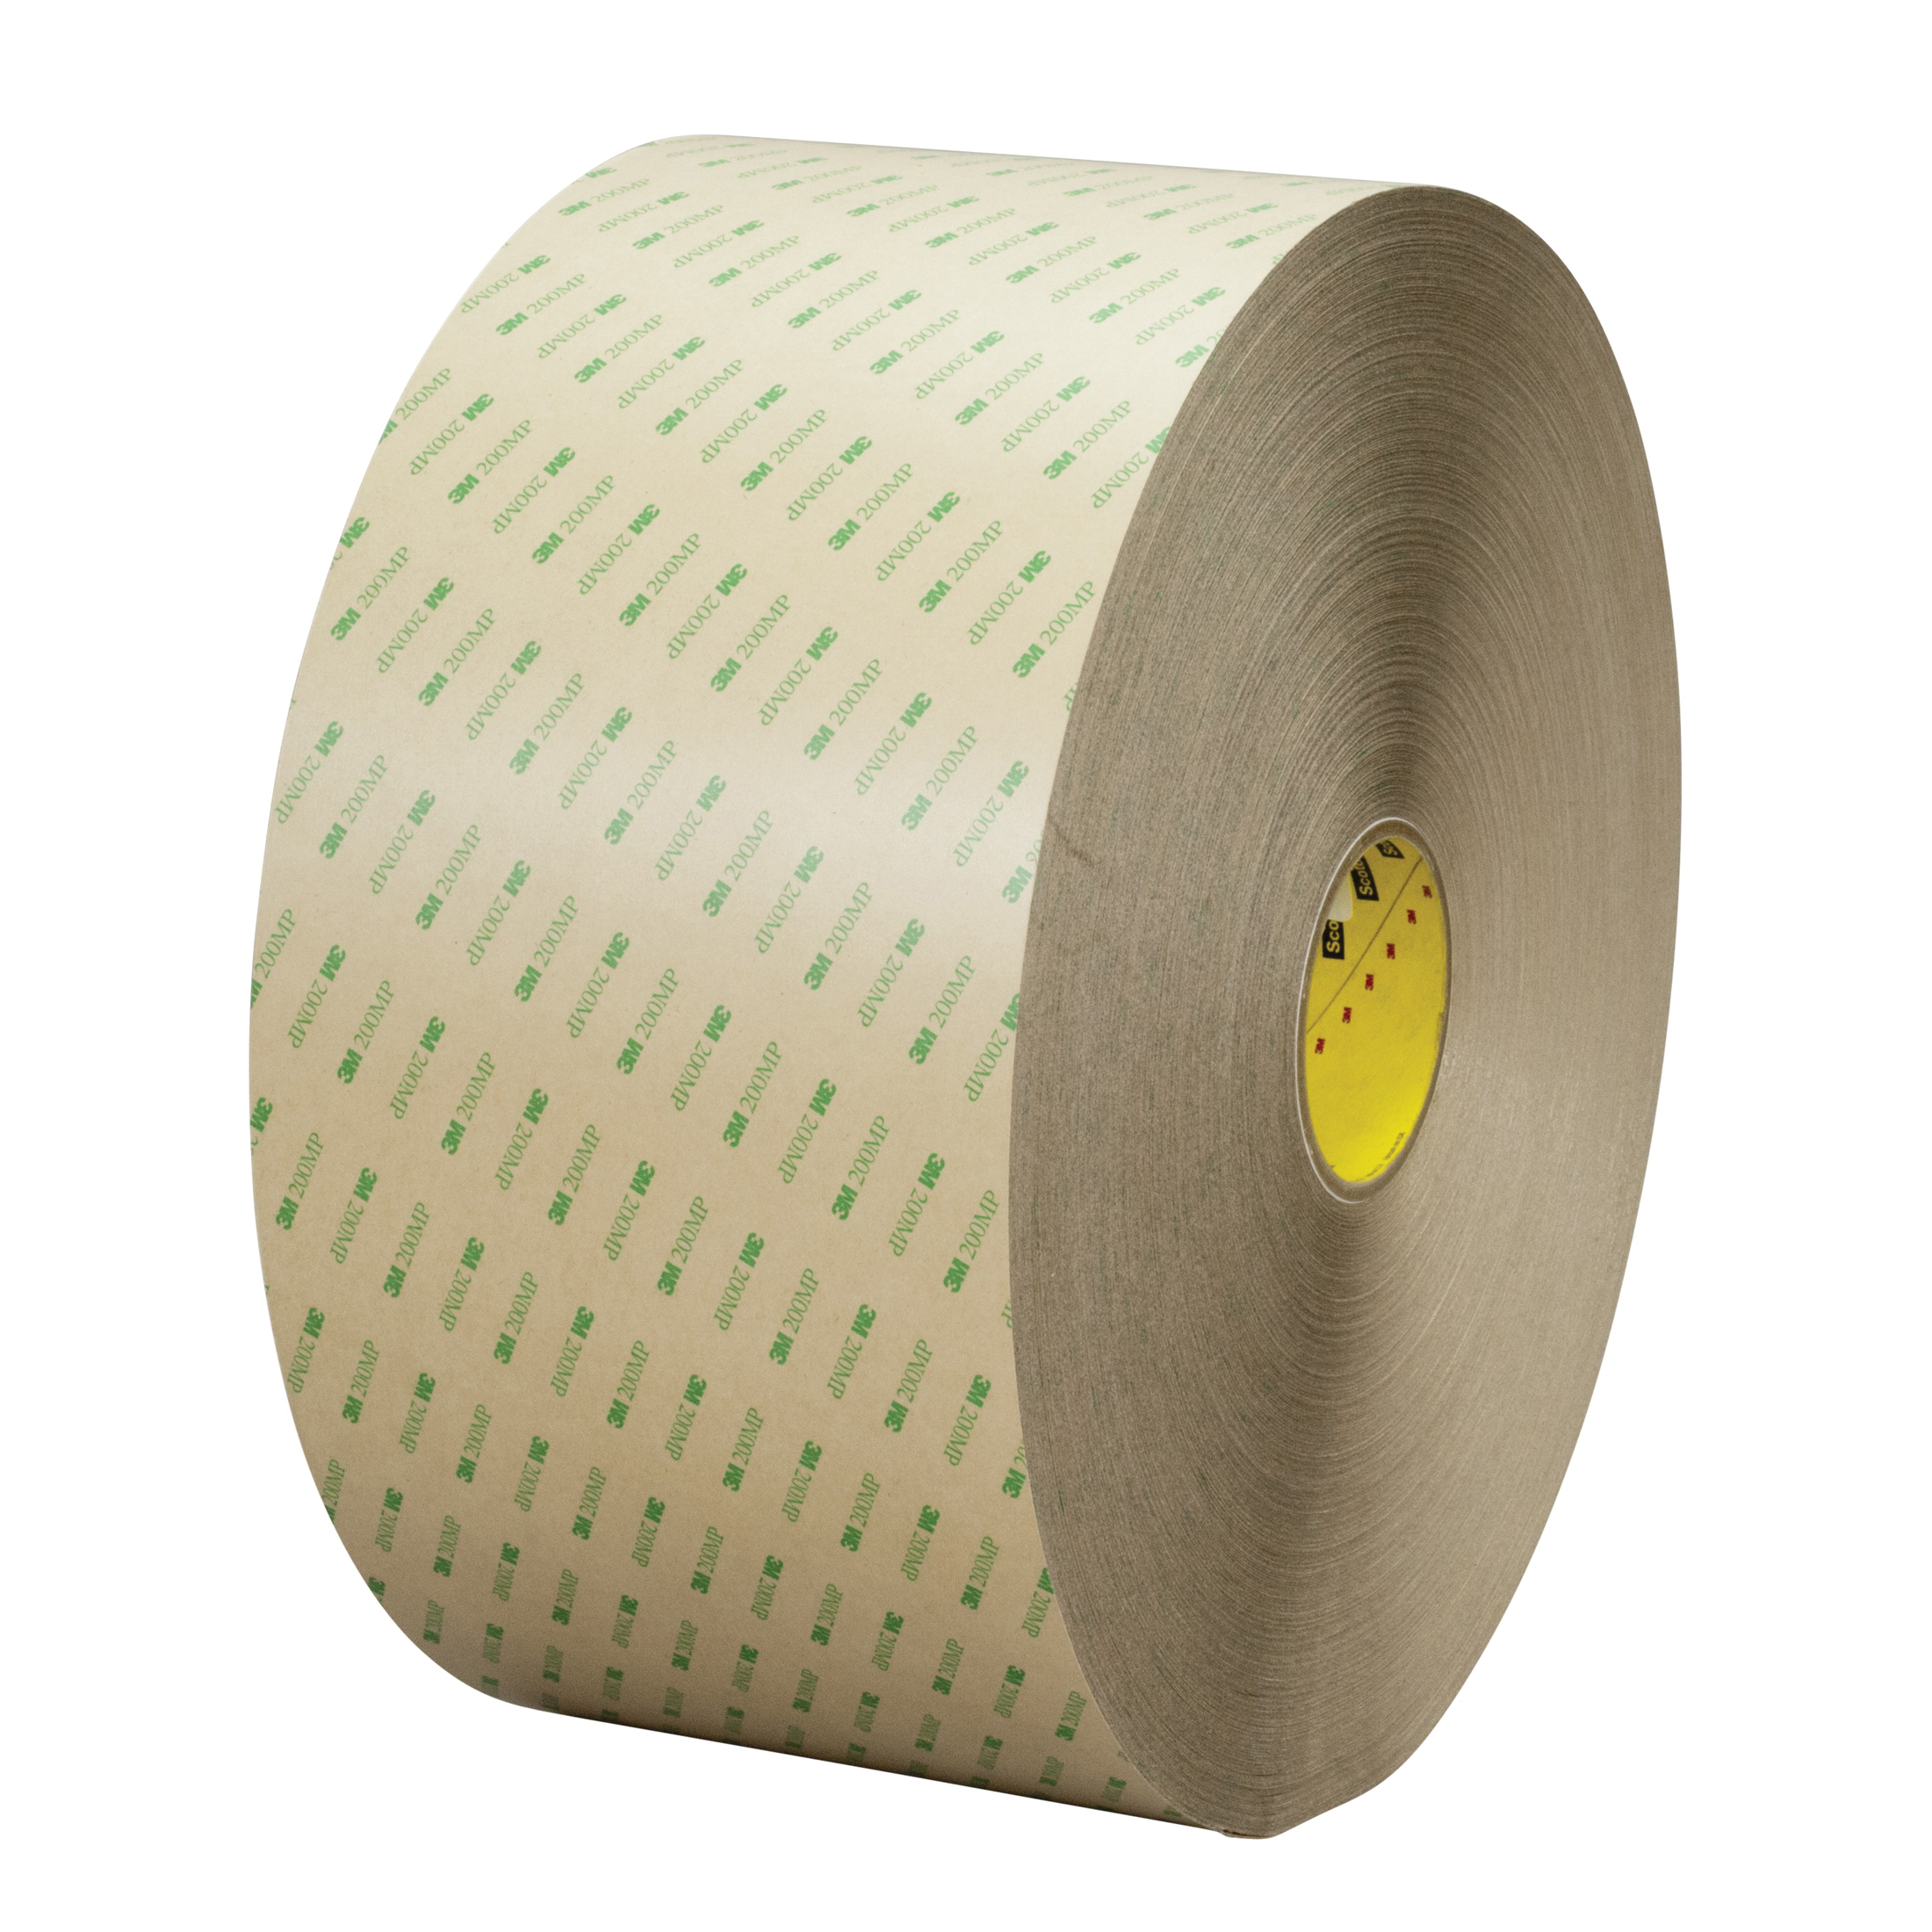 3M™ 021200-24644 High Performance Medium Tack Adhesive Transfer Tape, 60 yd L x 12 in W, 11.2 mil THK, 5 mil 200MP Acrylic Adhesive, Clear